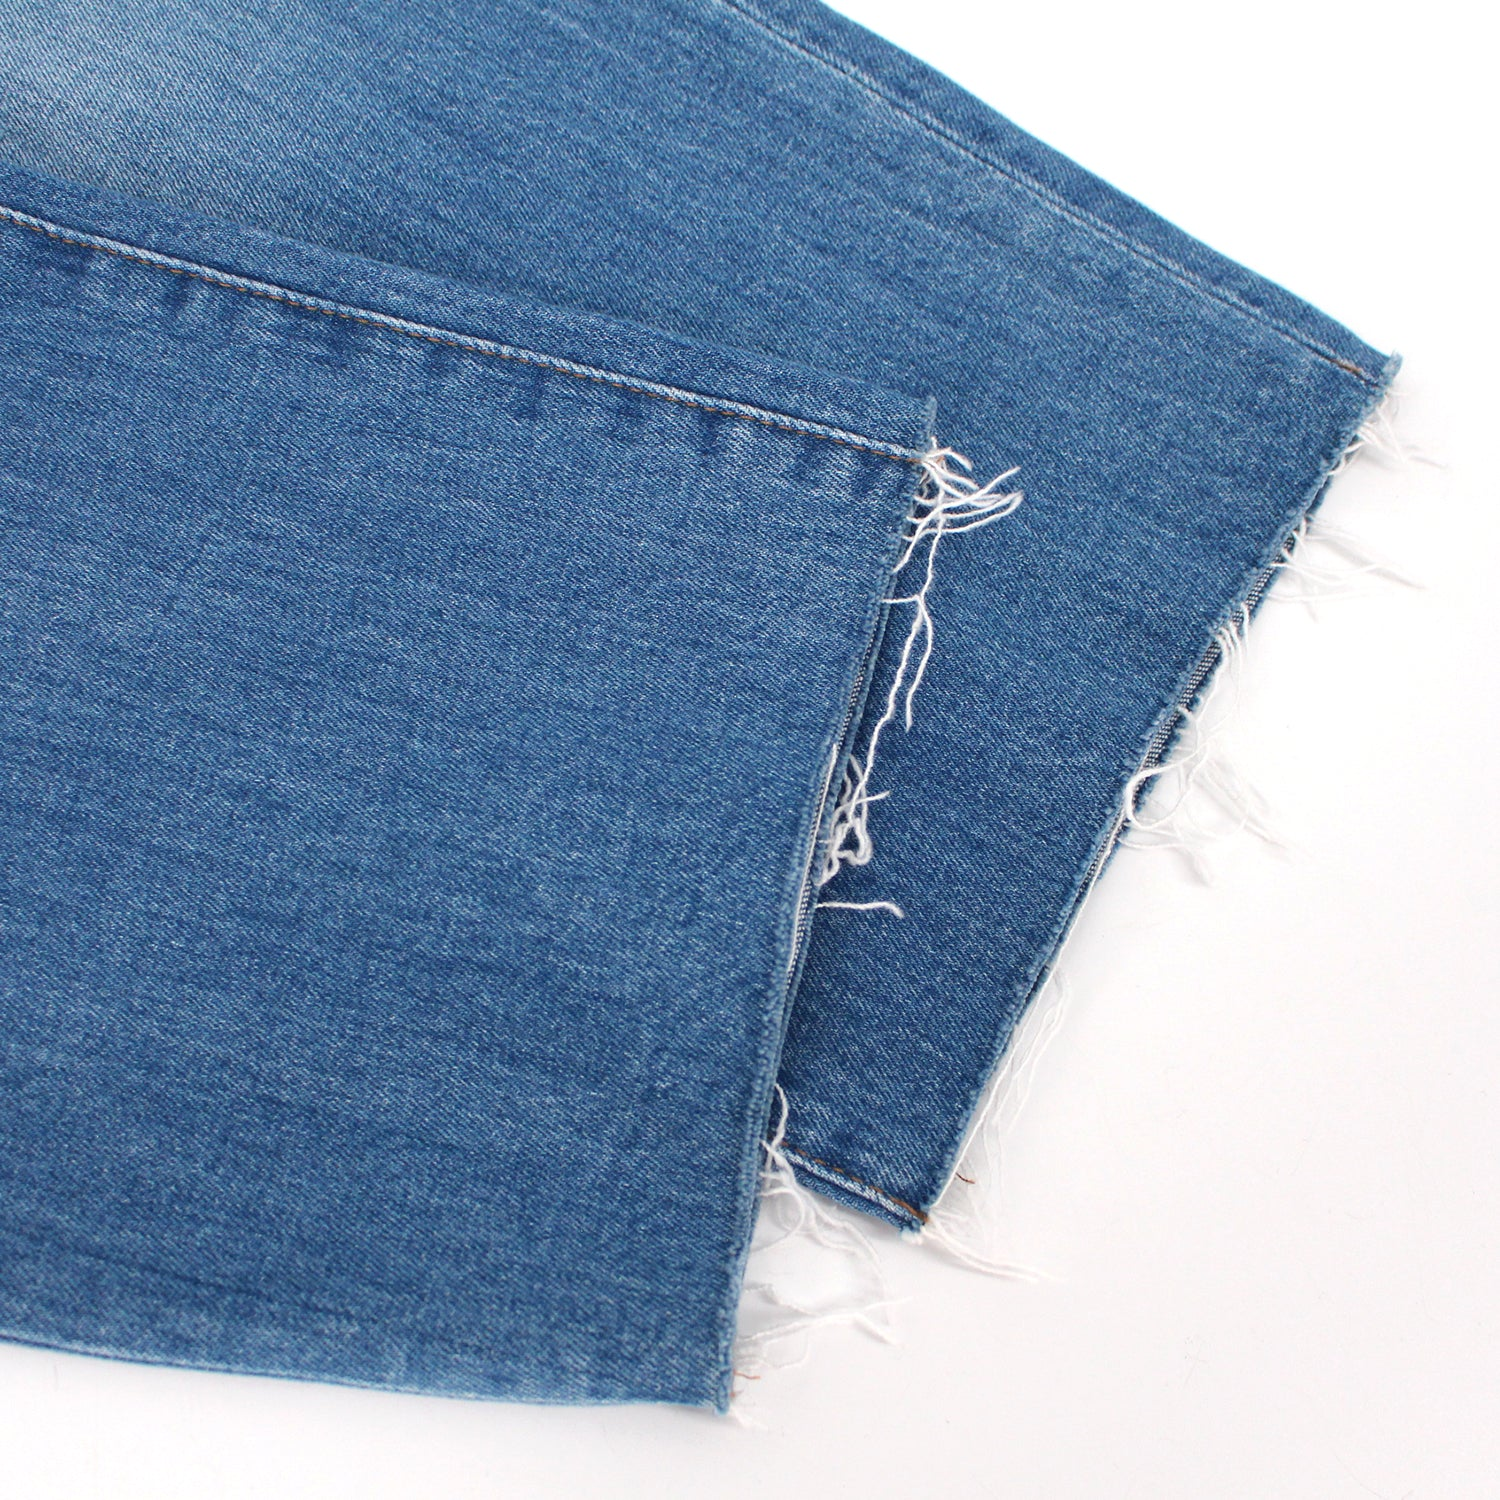 Madewell High-Rise Raw Hem Jeans